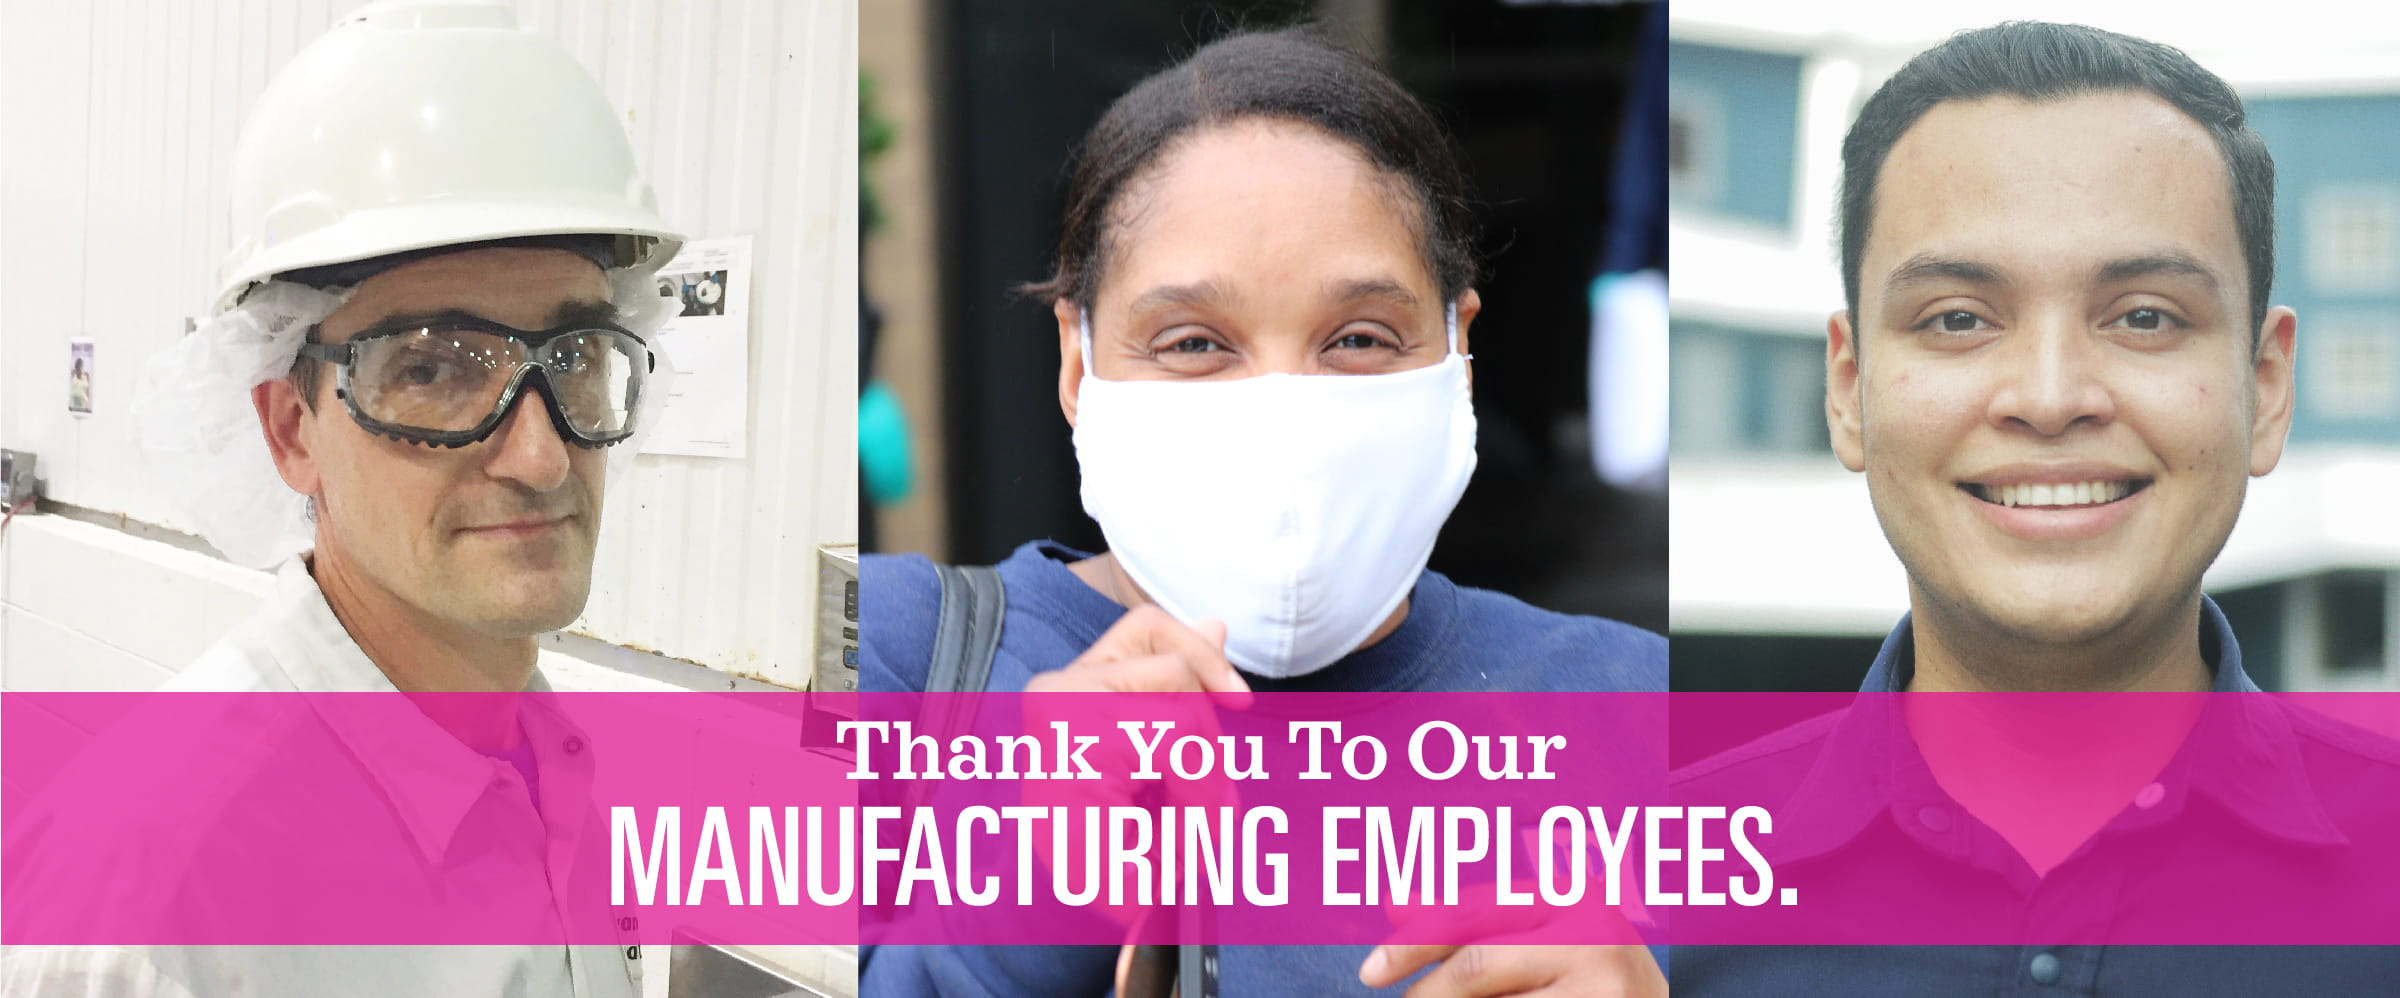 Employee Ambassador Groups give thanks to our manufacturing workers; covid-19; coronavirus; essential employees mccormick & company